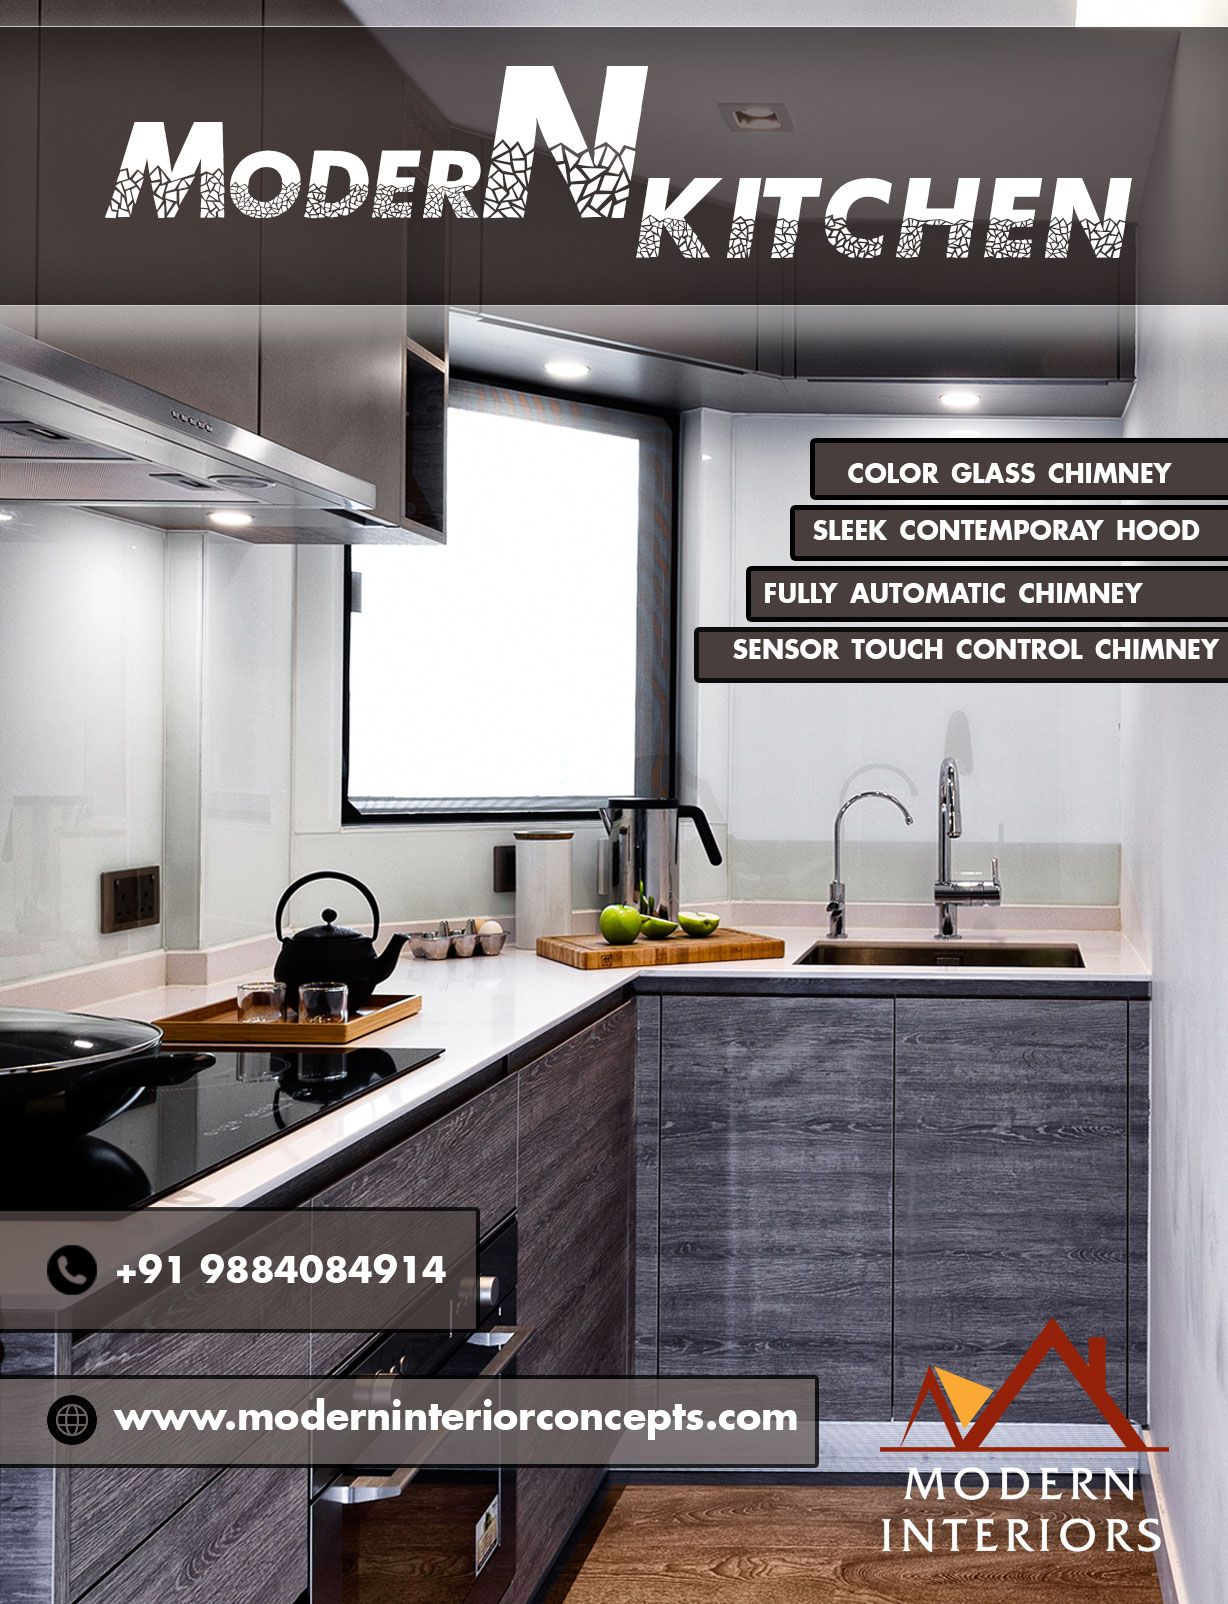 are you looking for modern kitchen ? call +91 9884084914 | http